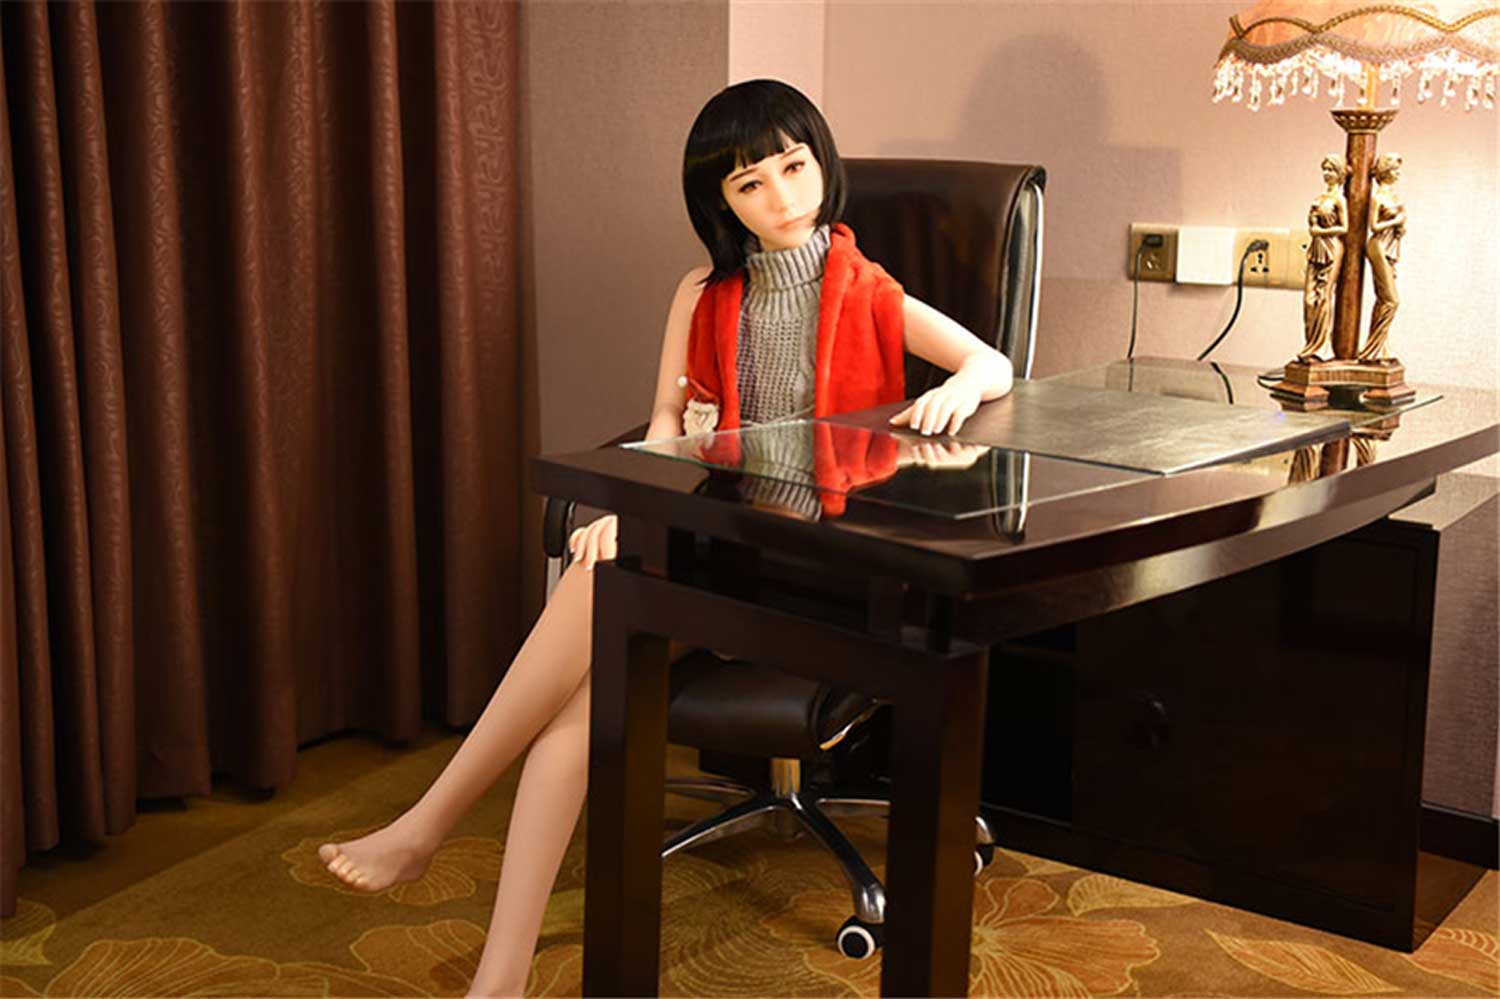 Sex doll sitting on a chair with hands on the table